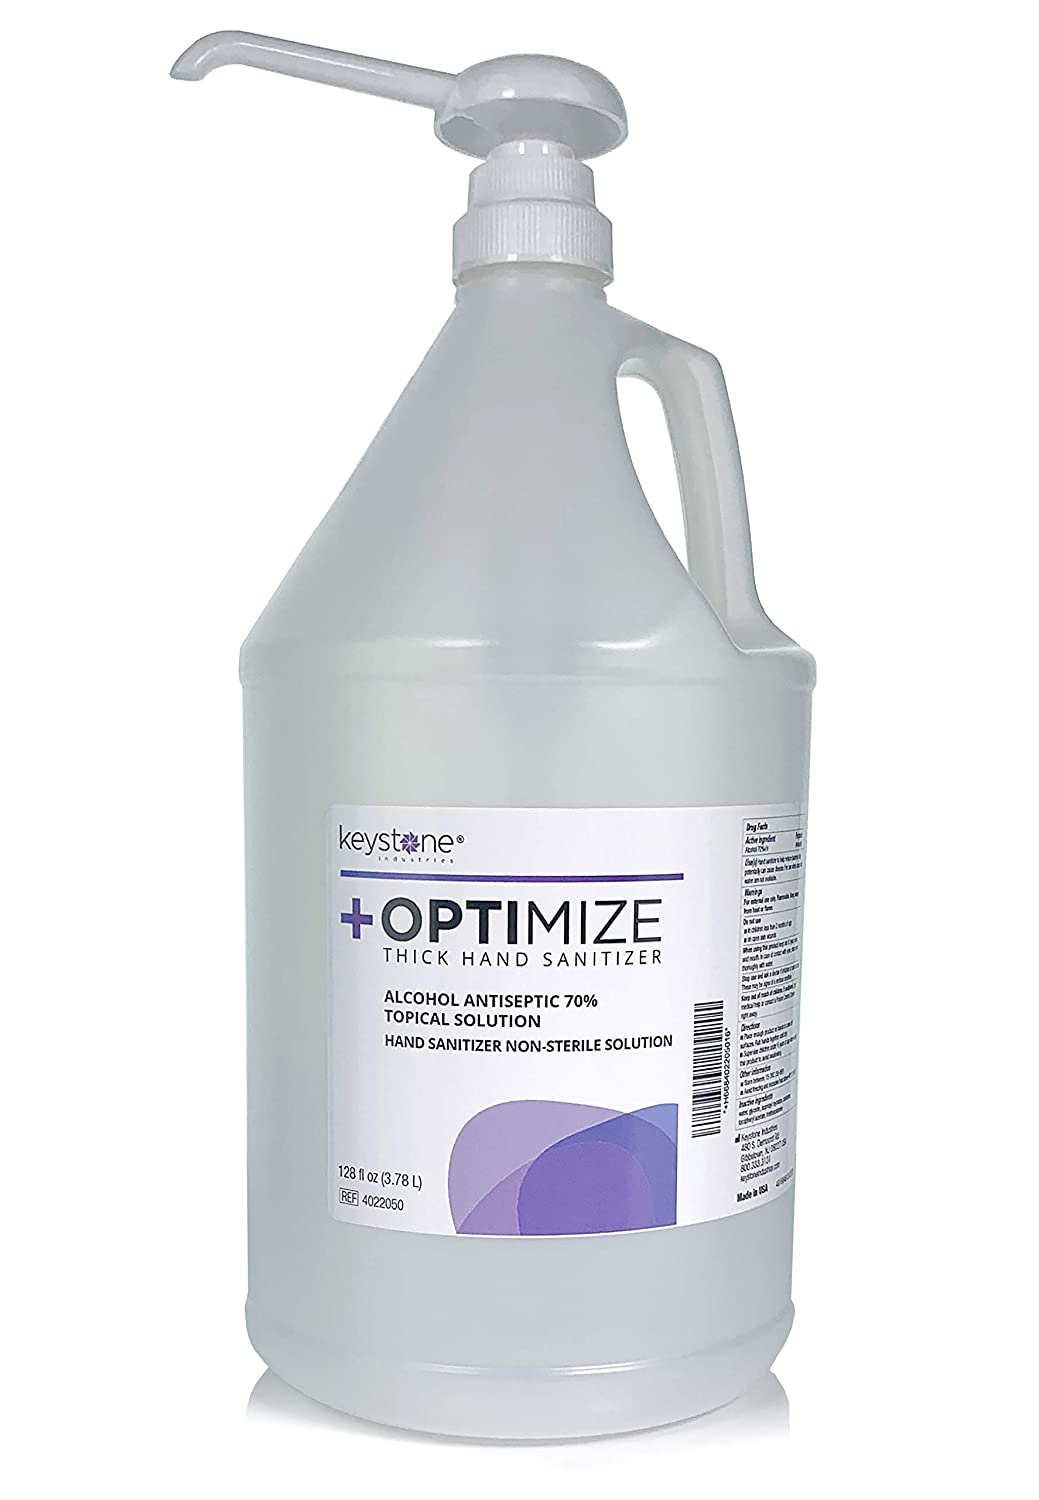 +Optimize Hand Sanitizer 1 gal (128 fl oz) with pump